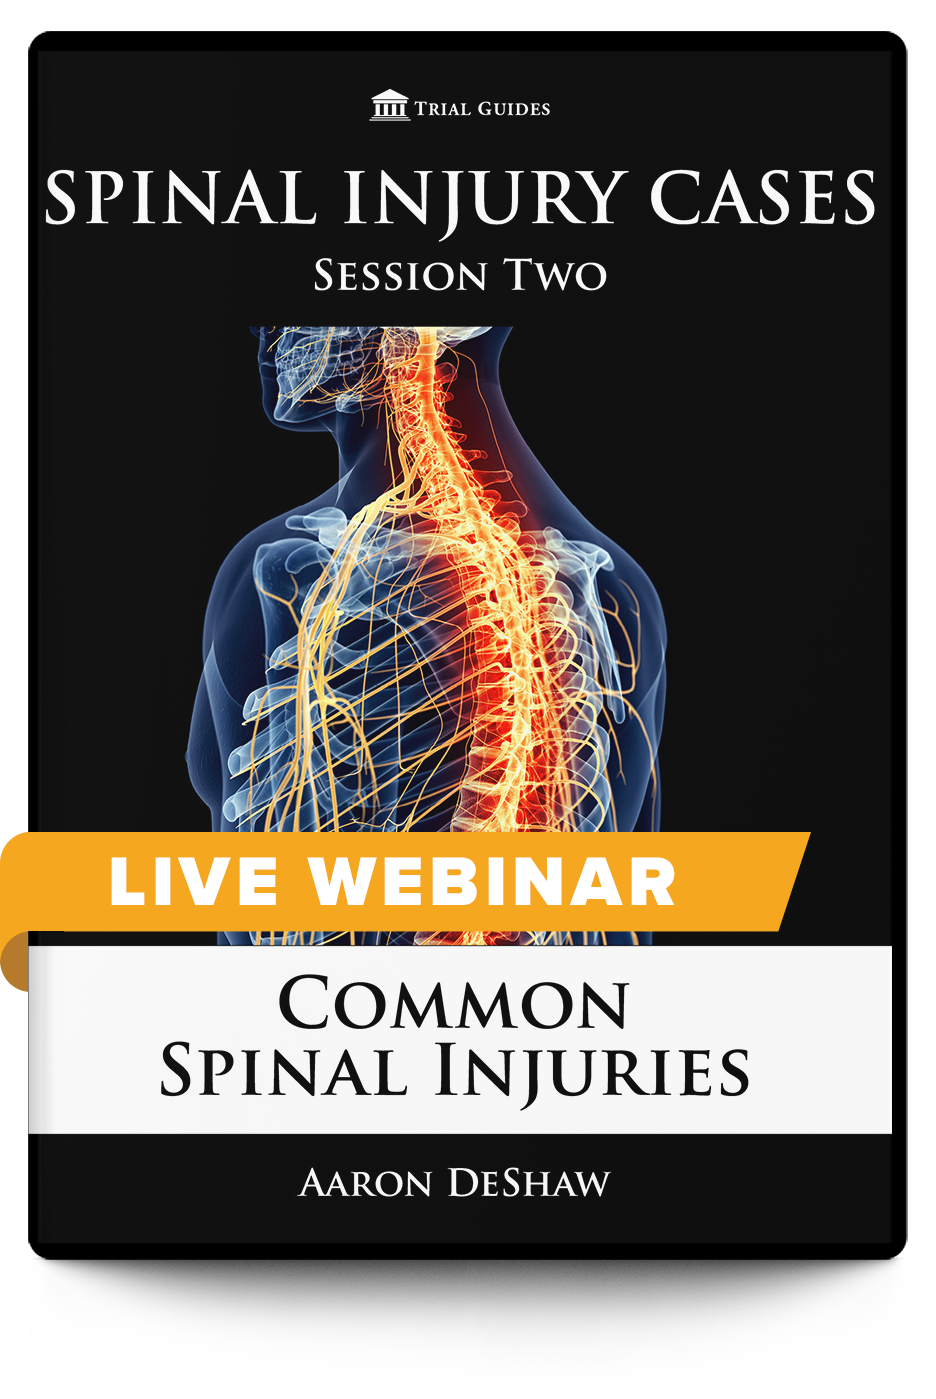 Spinal Injury Cases, Session Two: Common Spinal Injuries - Live Webinar